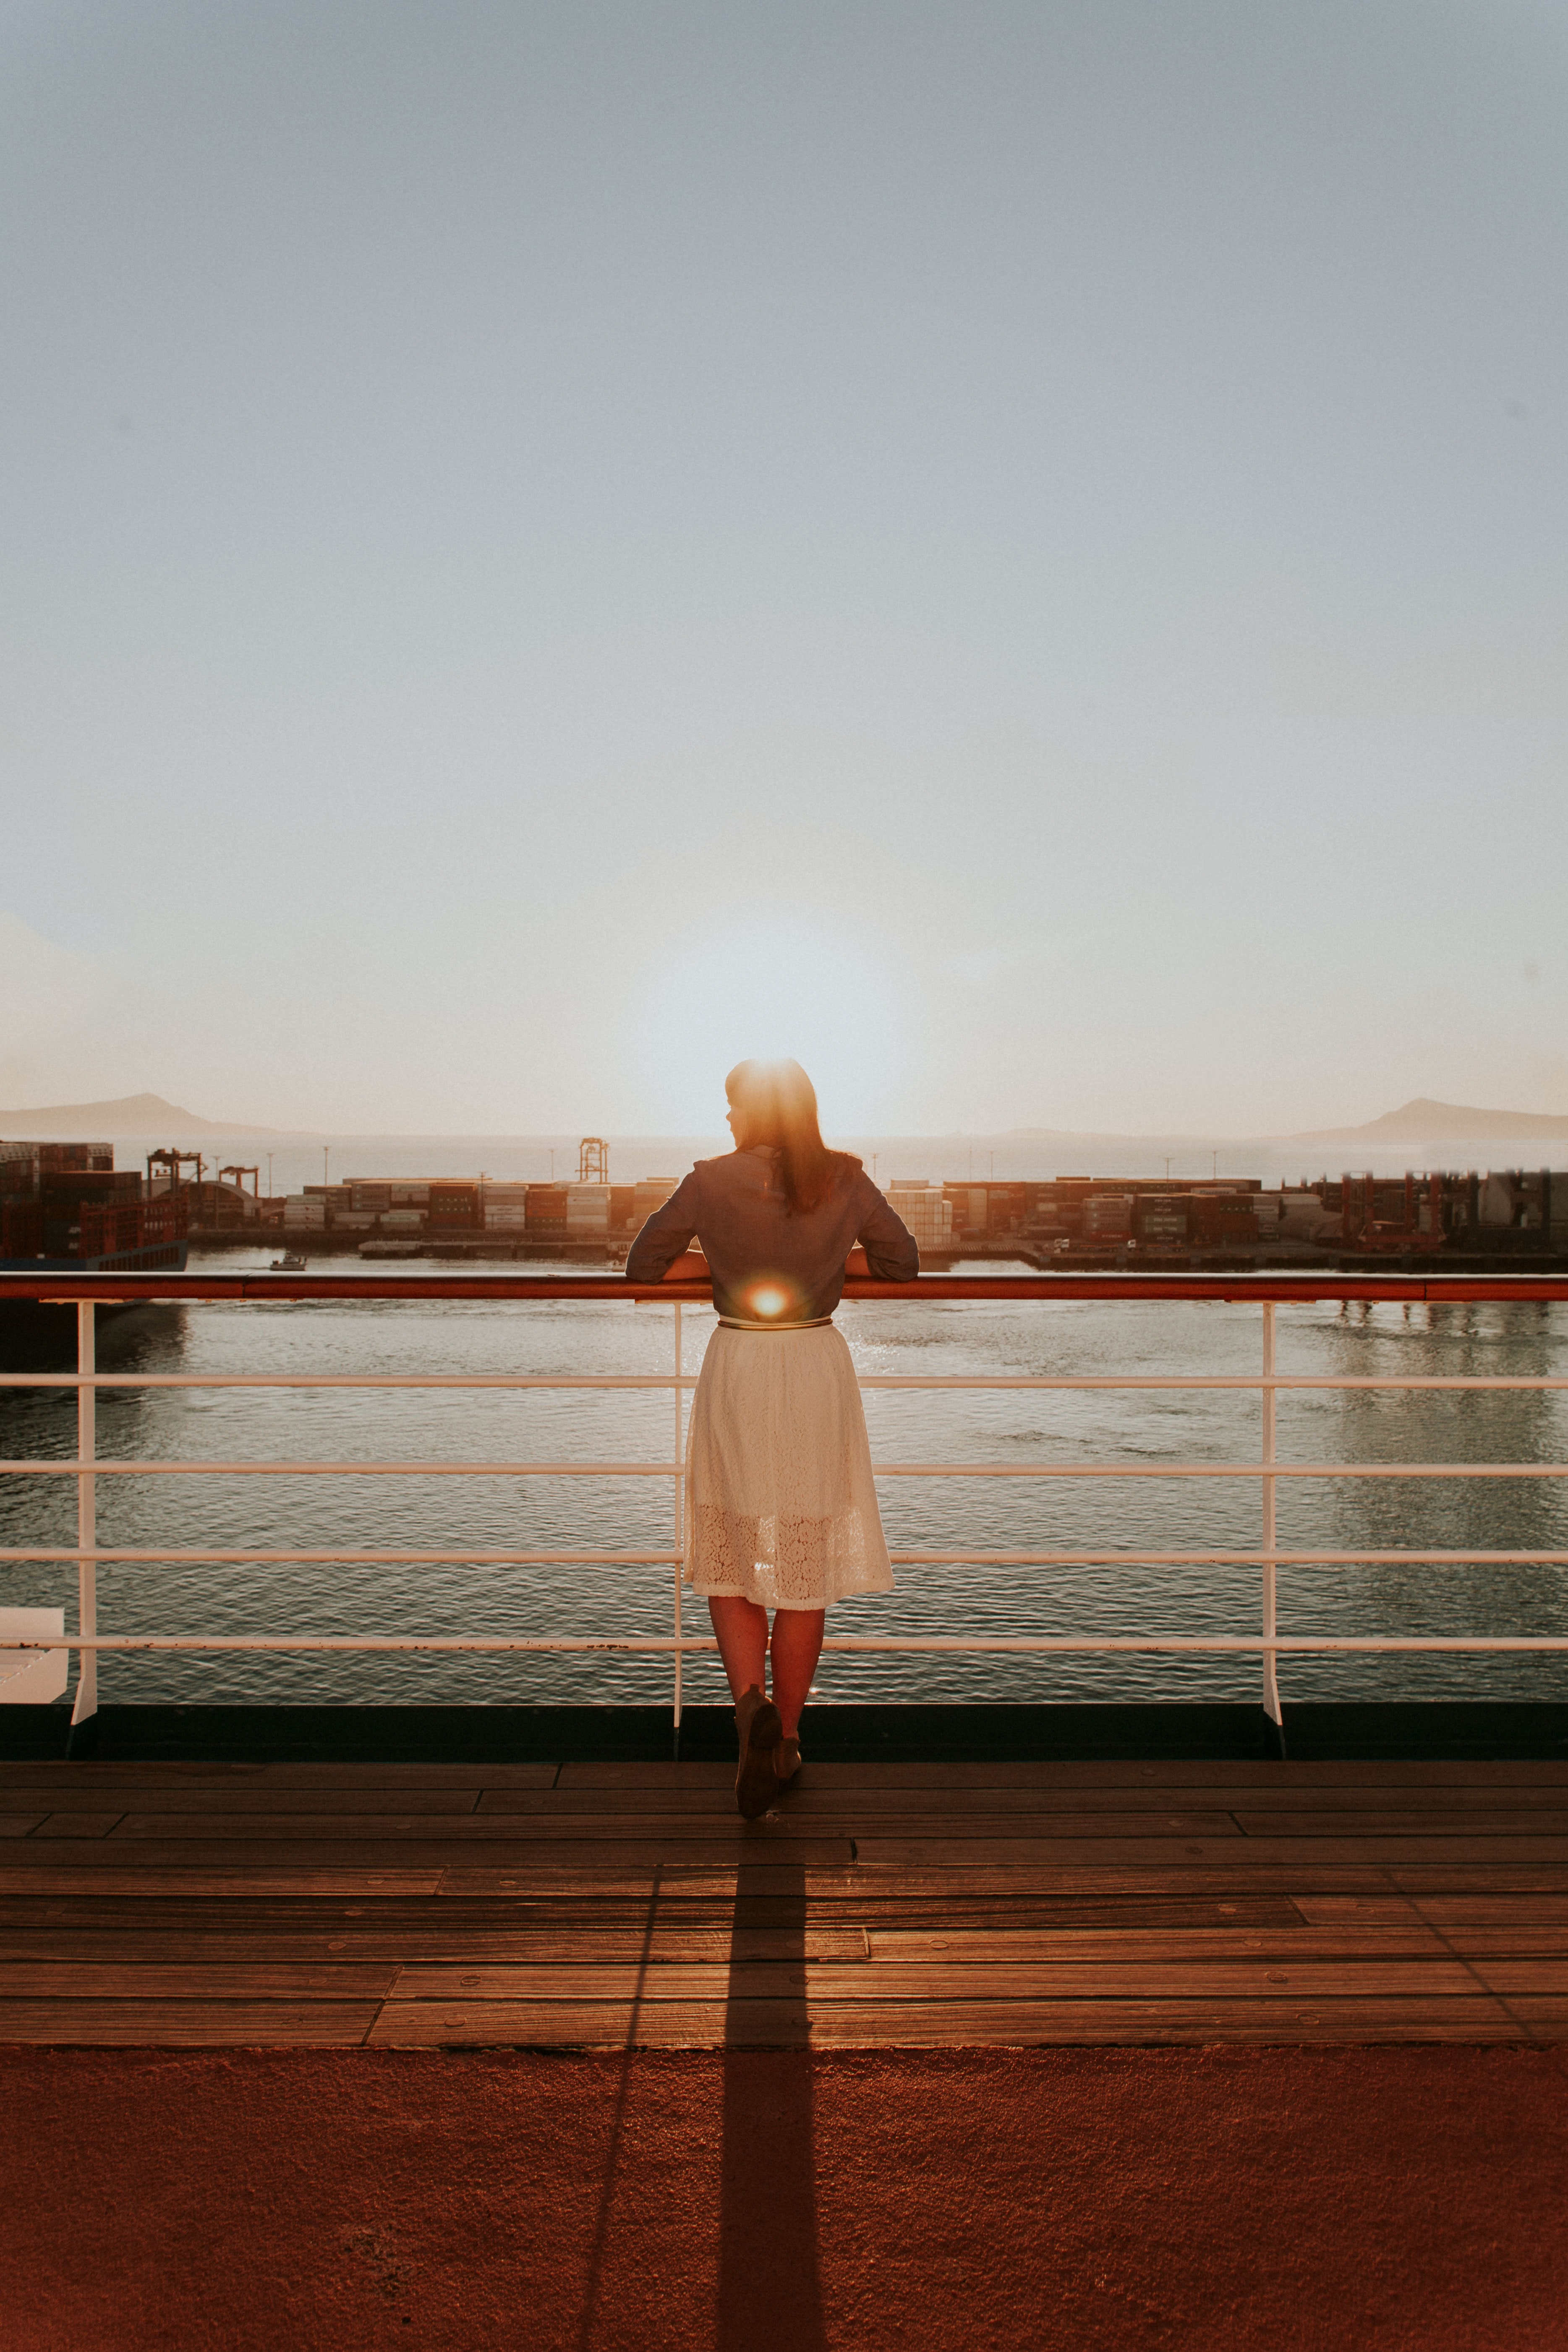 woman wearing white skirt looking at body of water during daytime